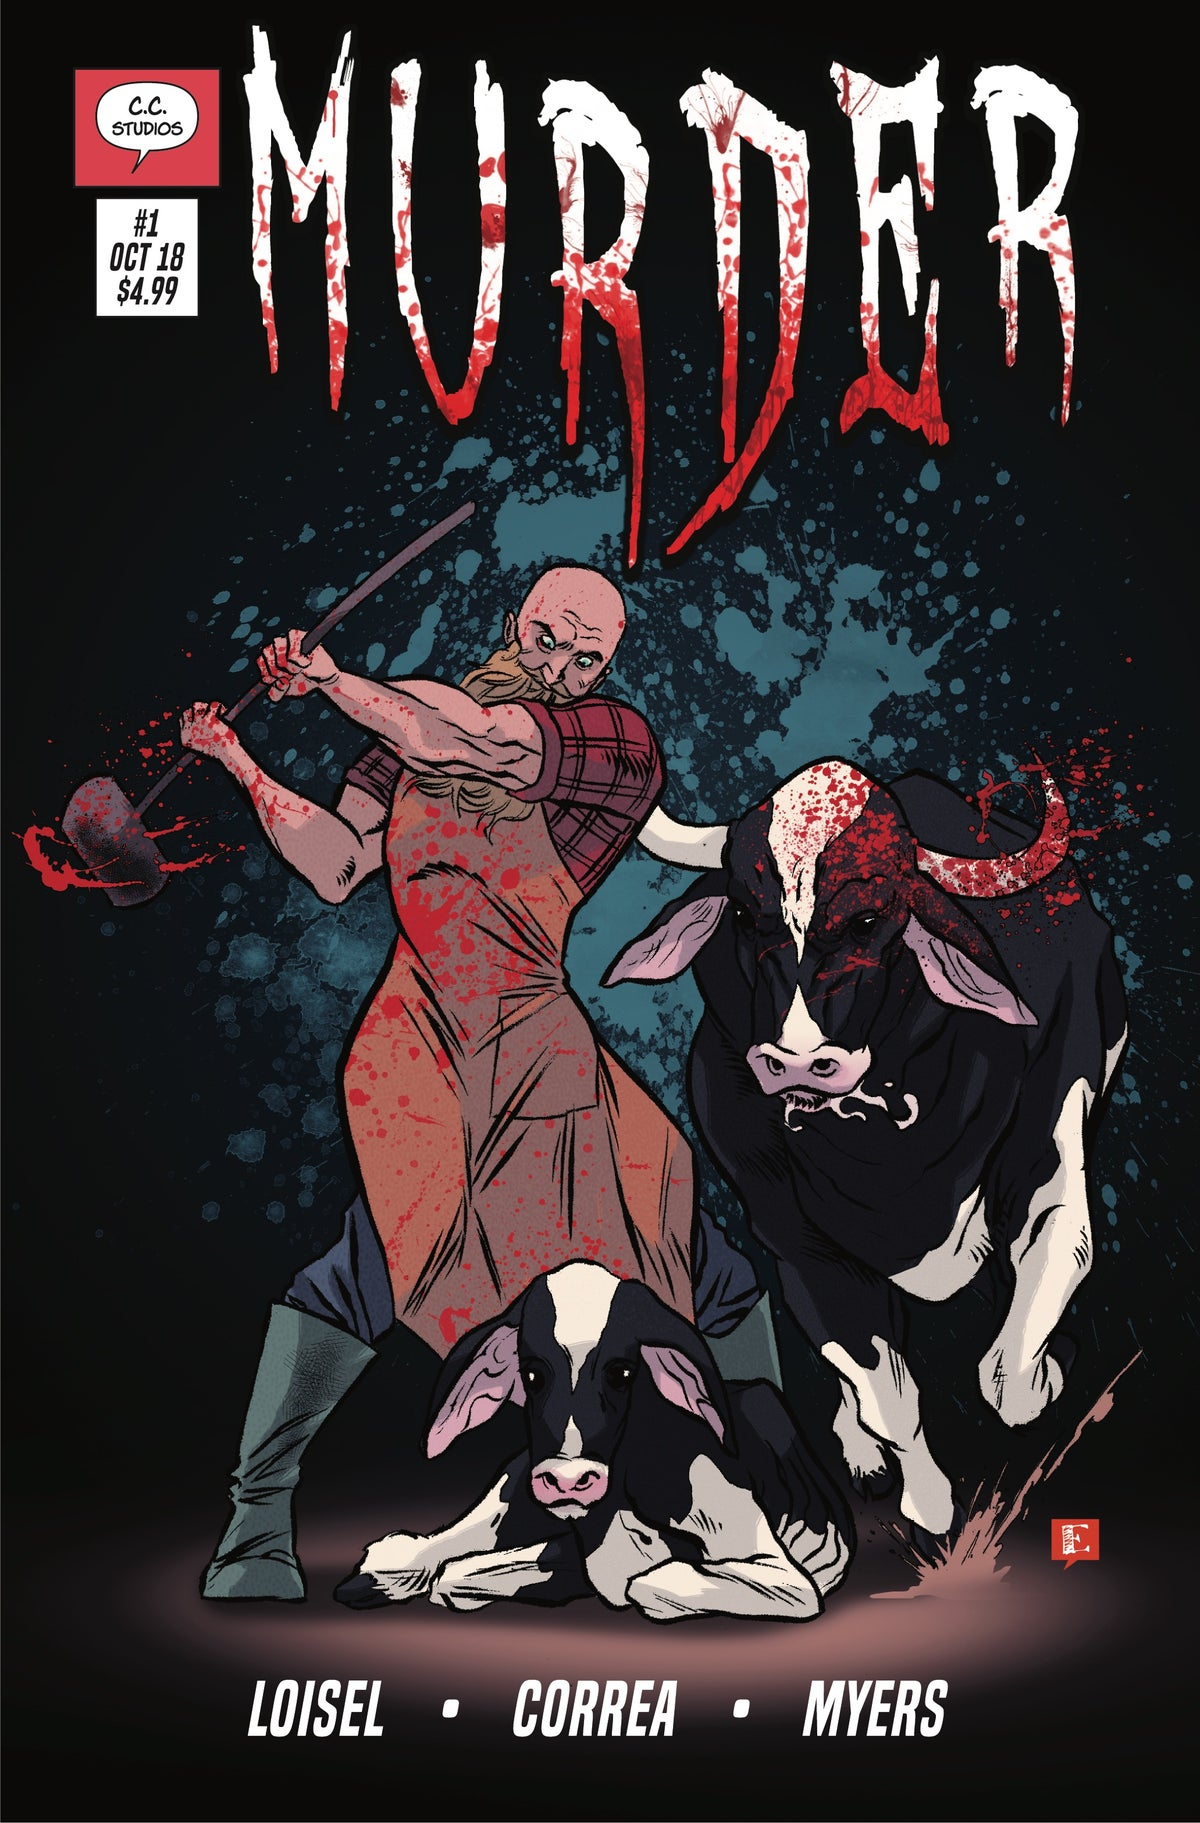 Image of Murder issue 1